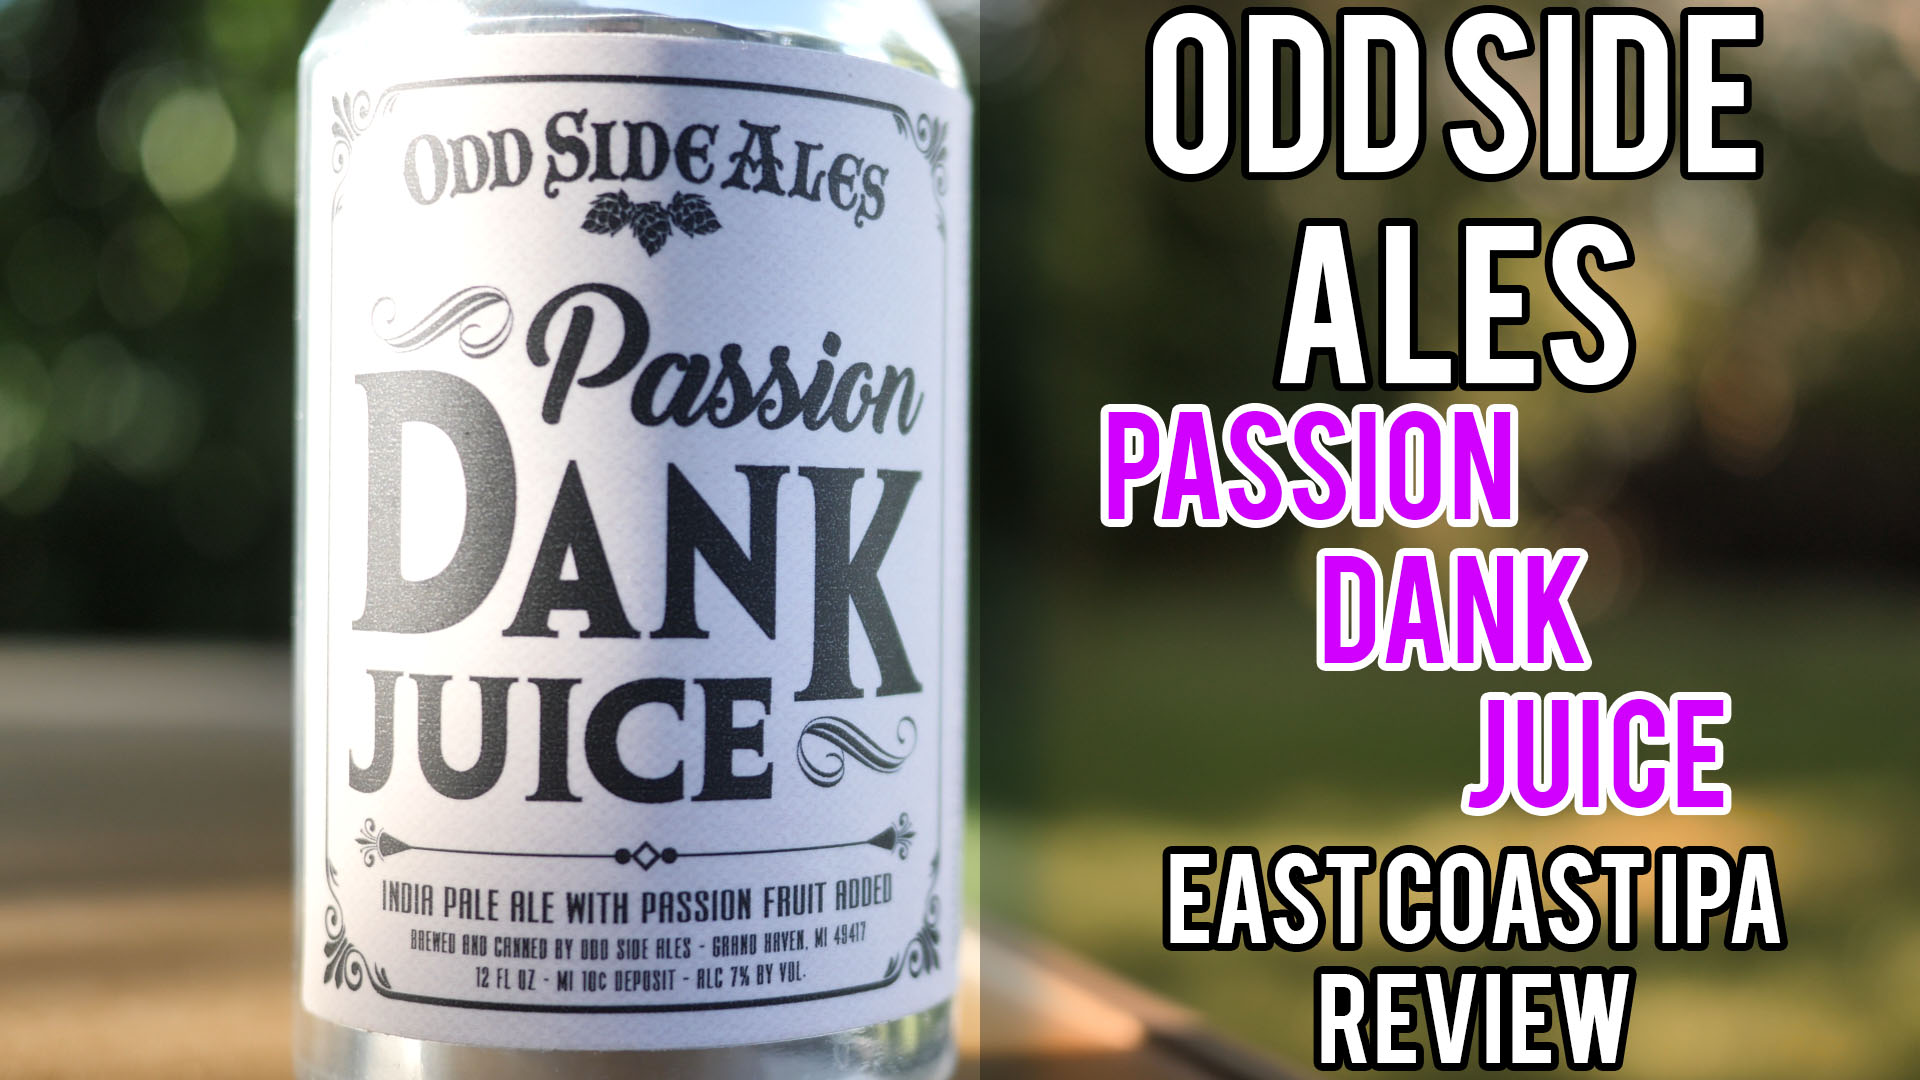 Odd Side Ales Passion Dank Juice Review